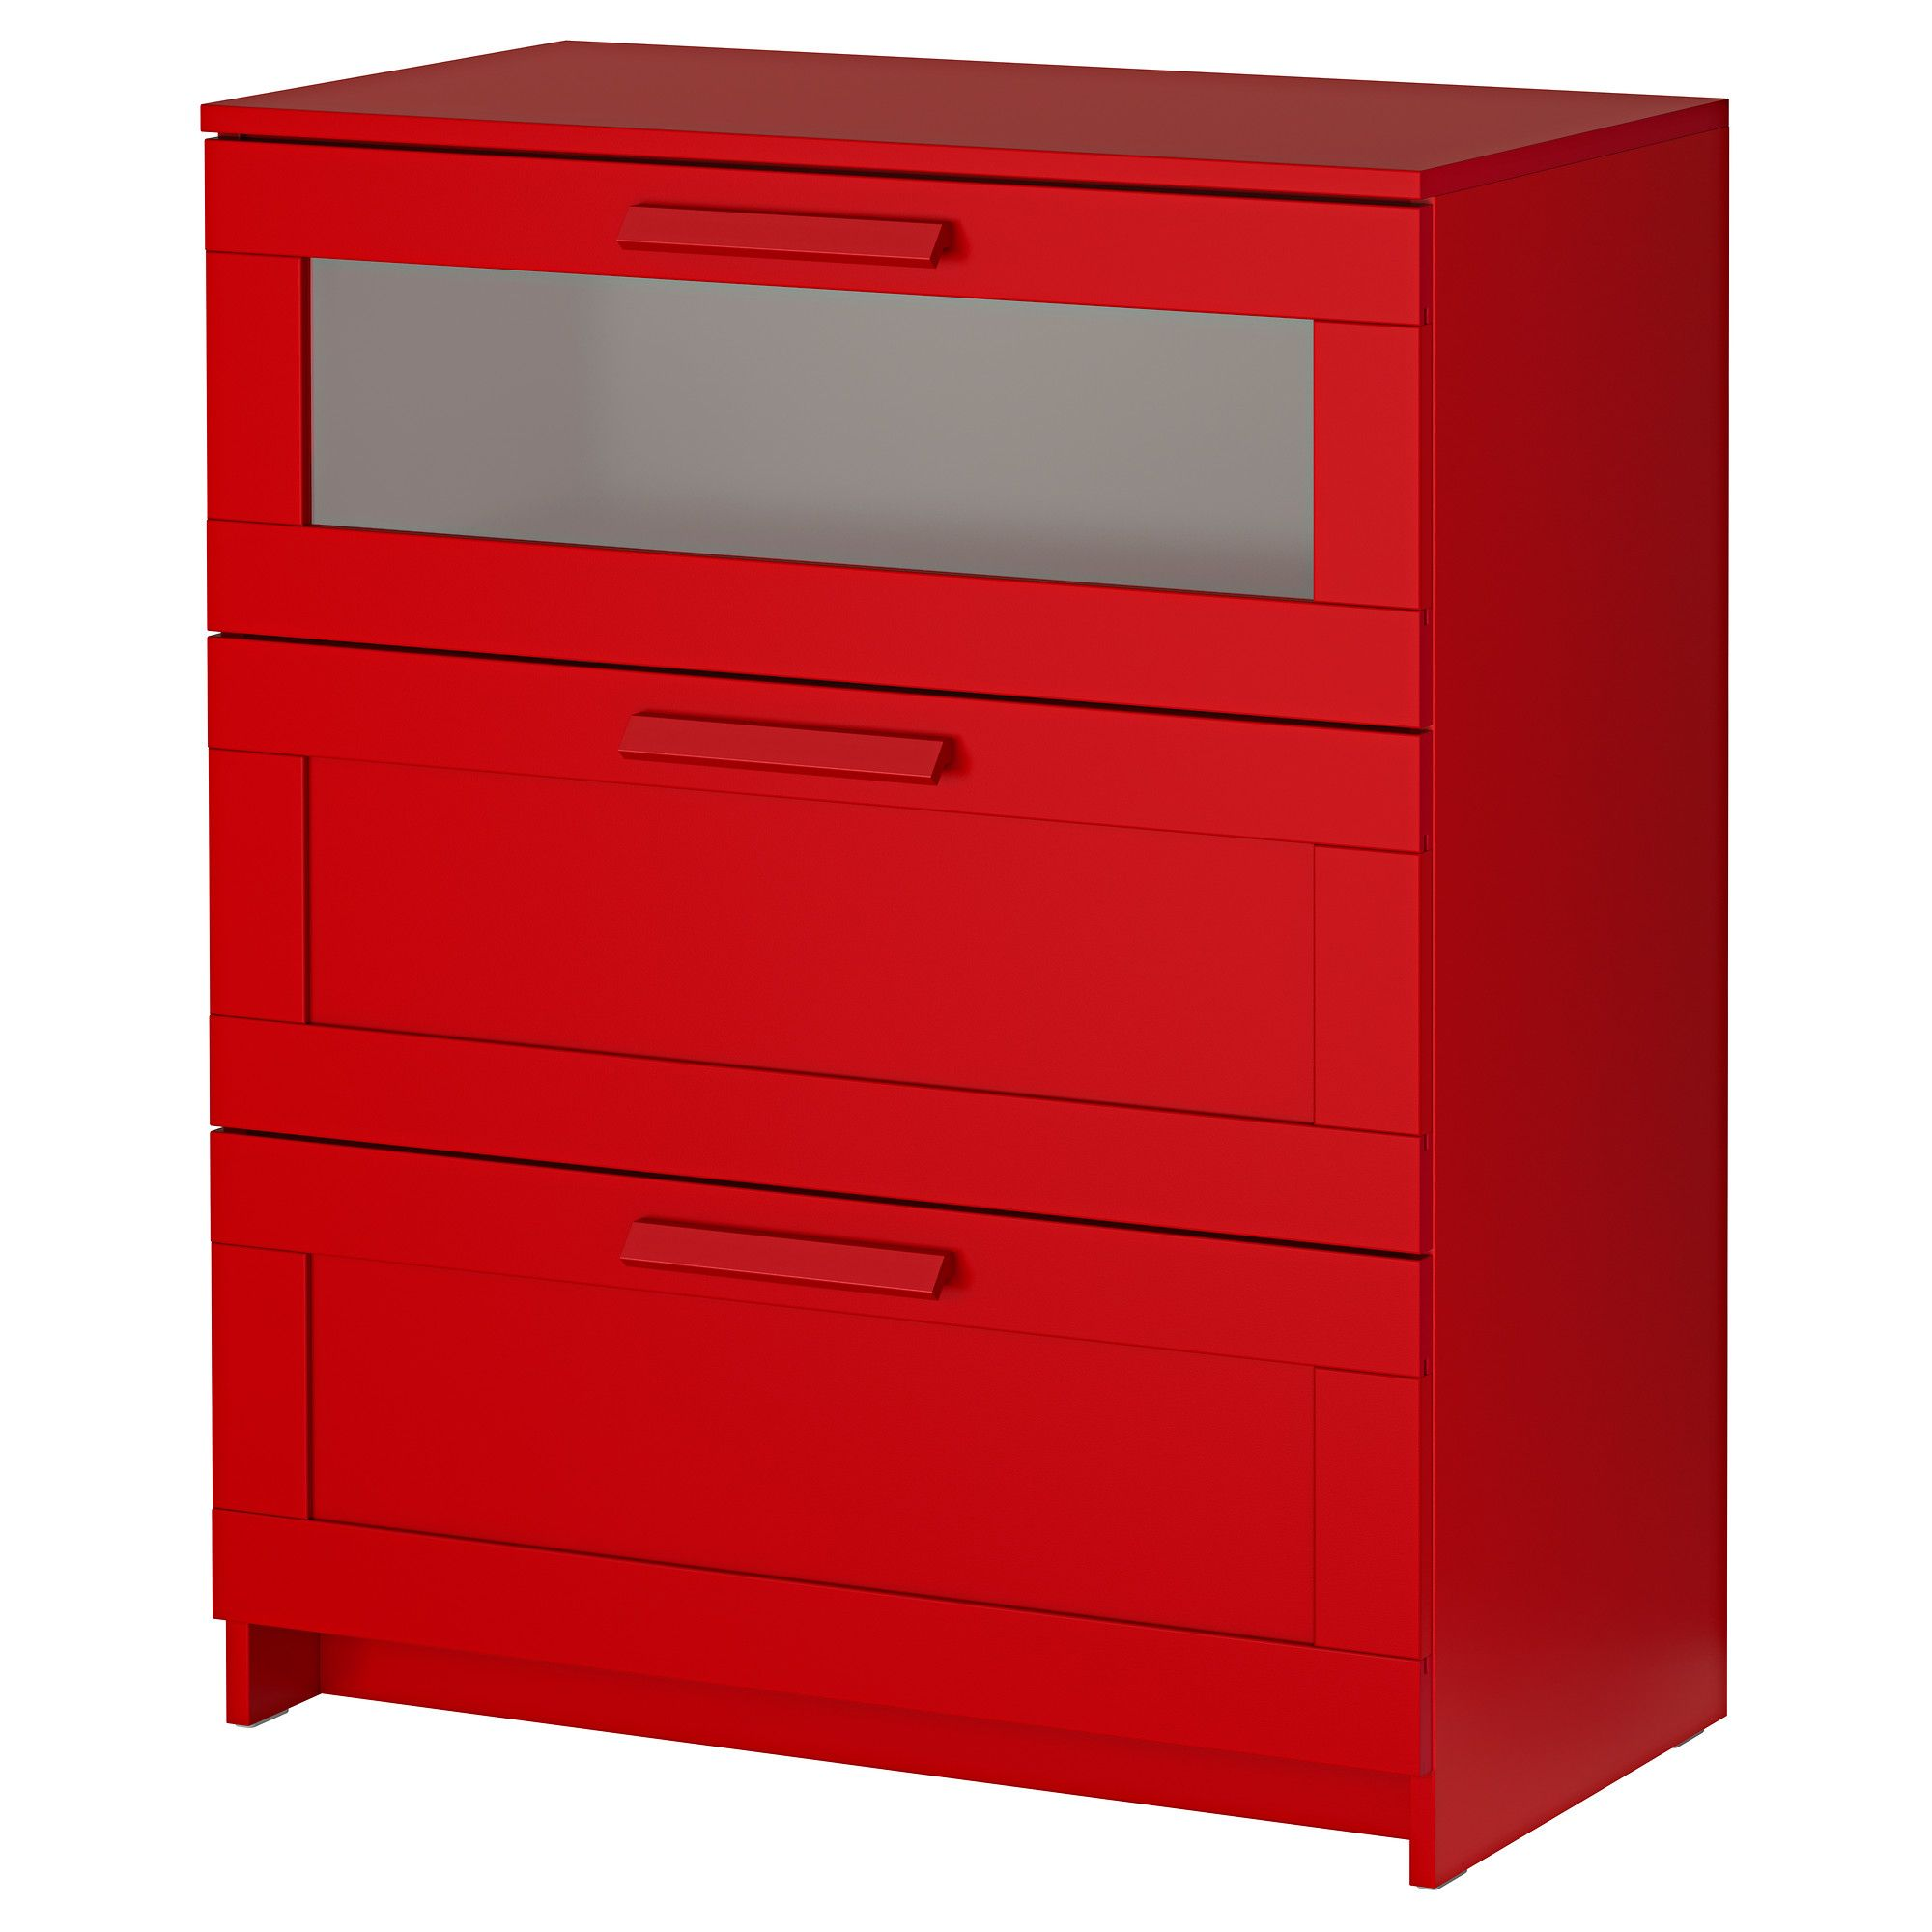 IKEA   BRIMNES, Chest Of 3 Drawers, Red/frosted Glass, , Smooth Running  Drawers With Pull Out Stop.